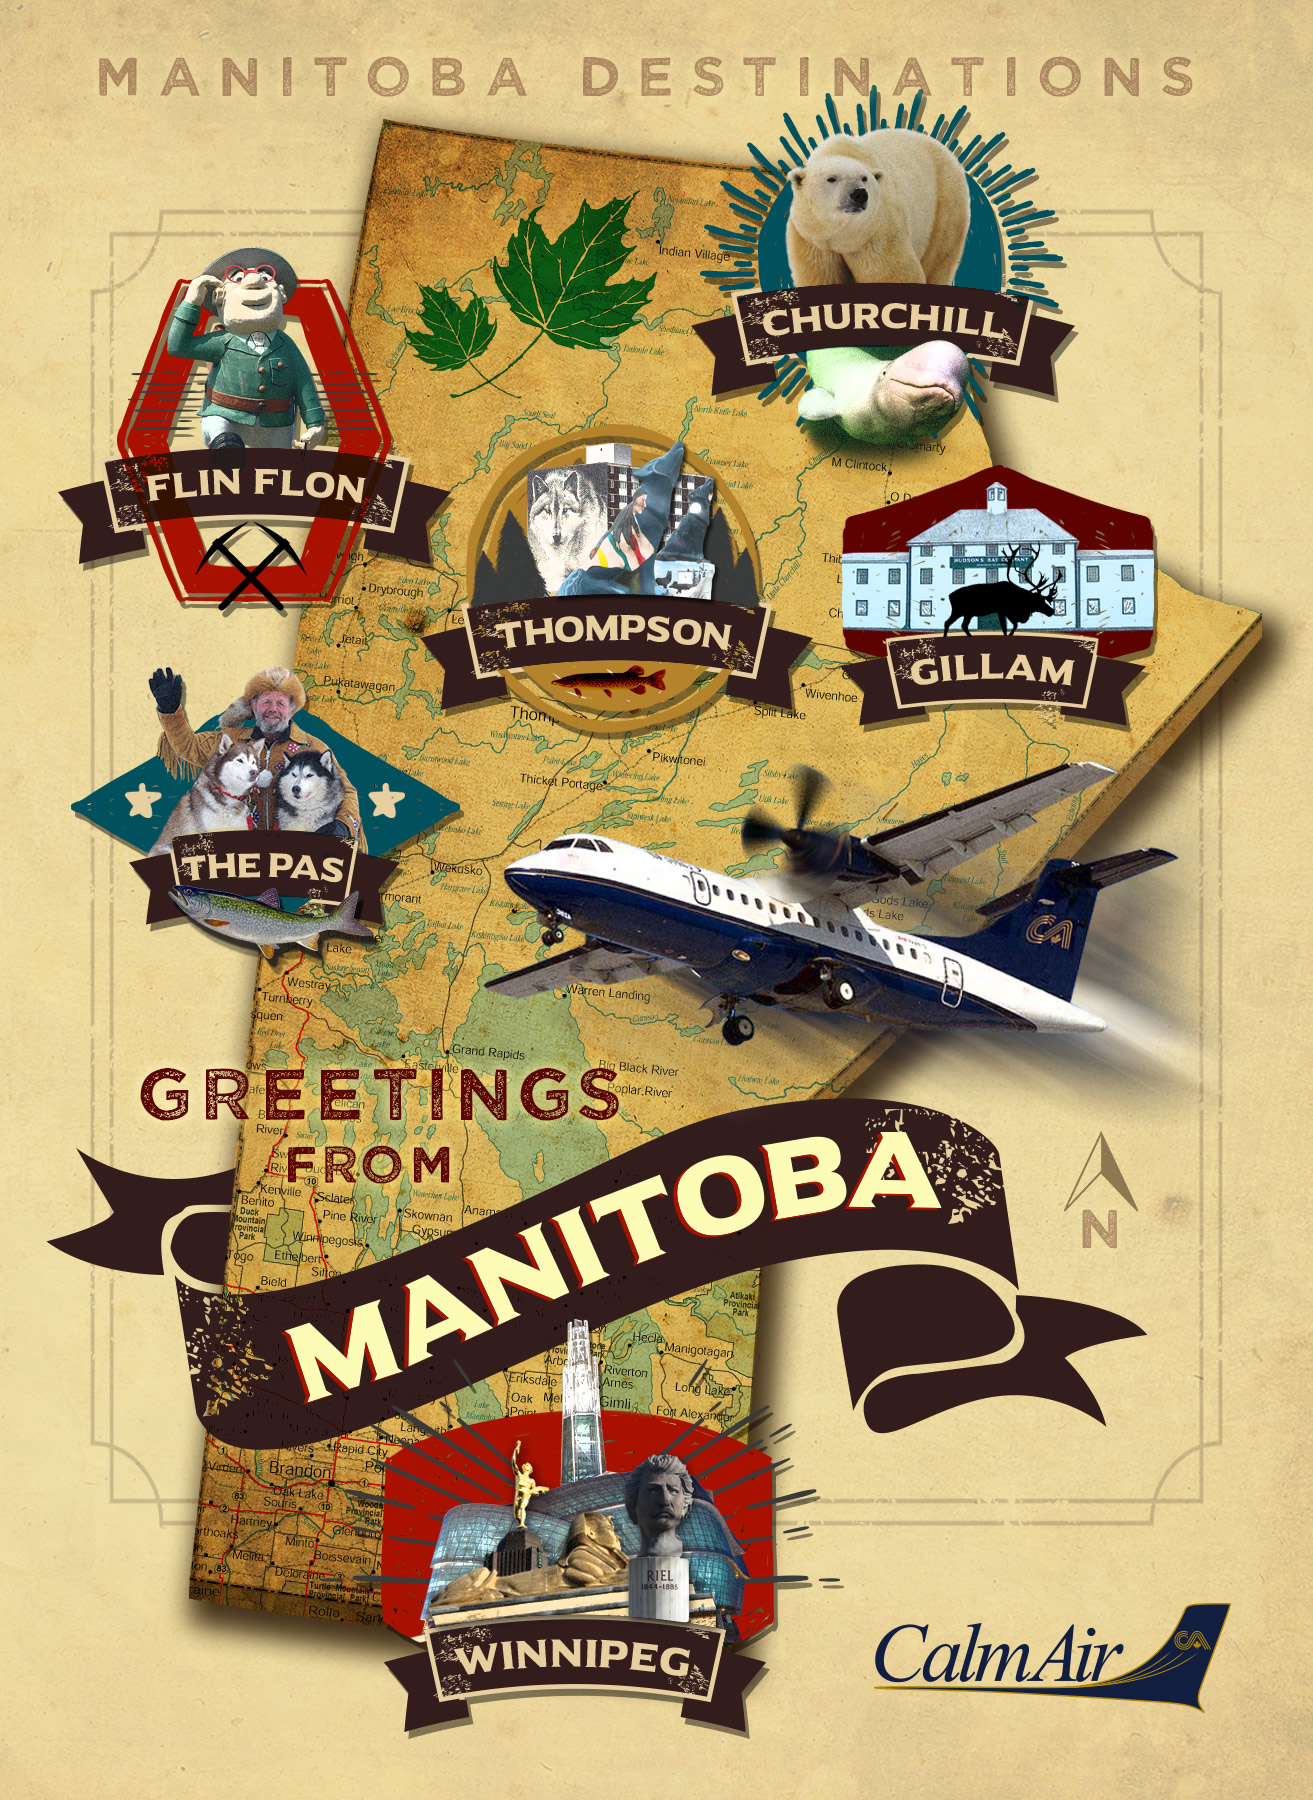 Greetings from Manitoba via Calm Air, your gateway to the North.